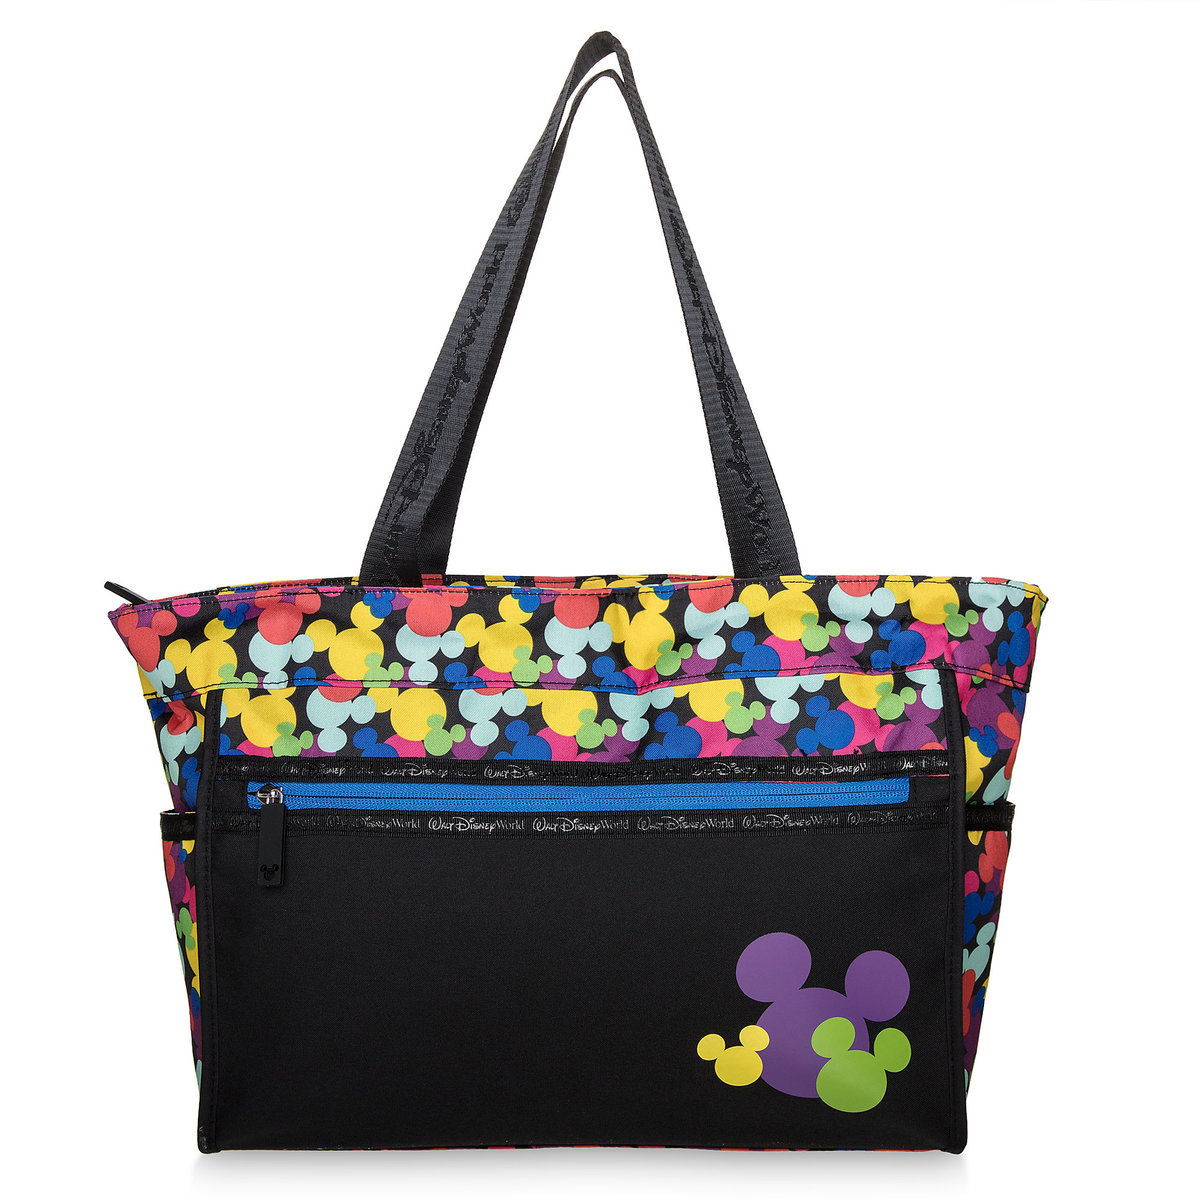 919f29ad833 Product Image of Mickey Mouse Icon Tote - Walt Disney World # 1